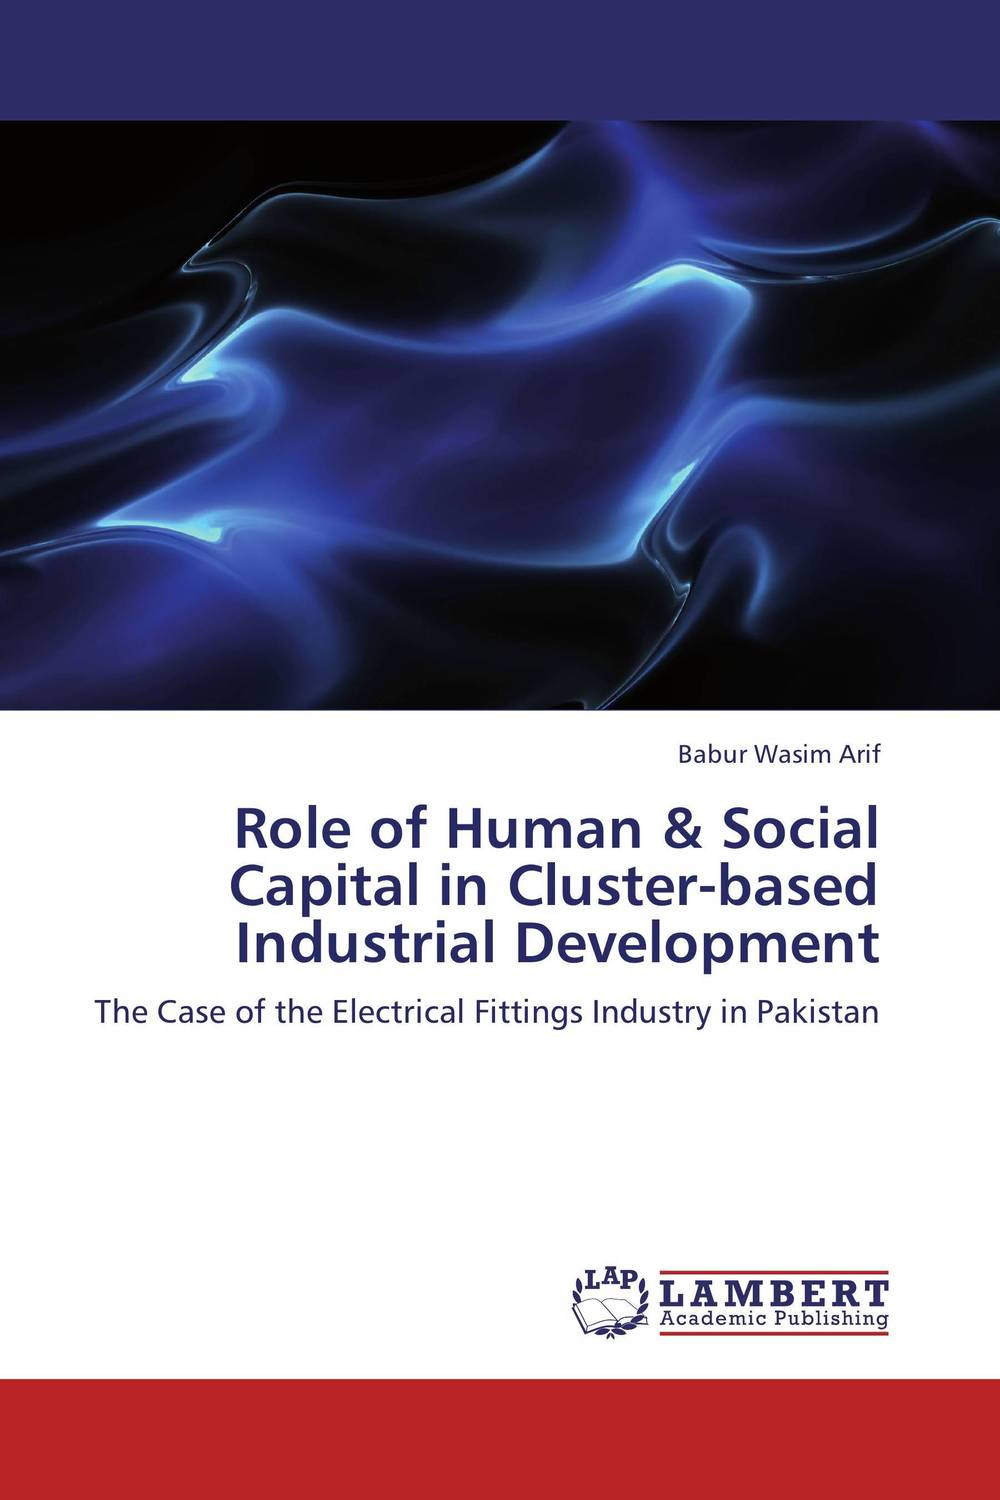 Role of Human & Social Capital in Cluster-based Industrial Development i manev social capital and strategy effectiveness an empirical study of entrepreneurial ventures in a transition economy